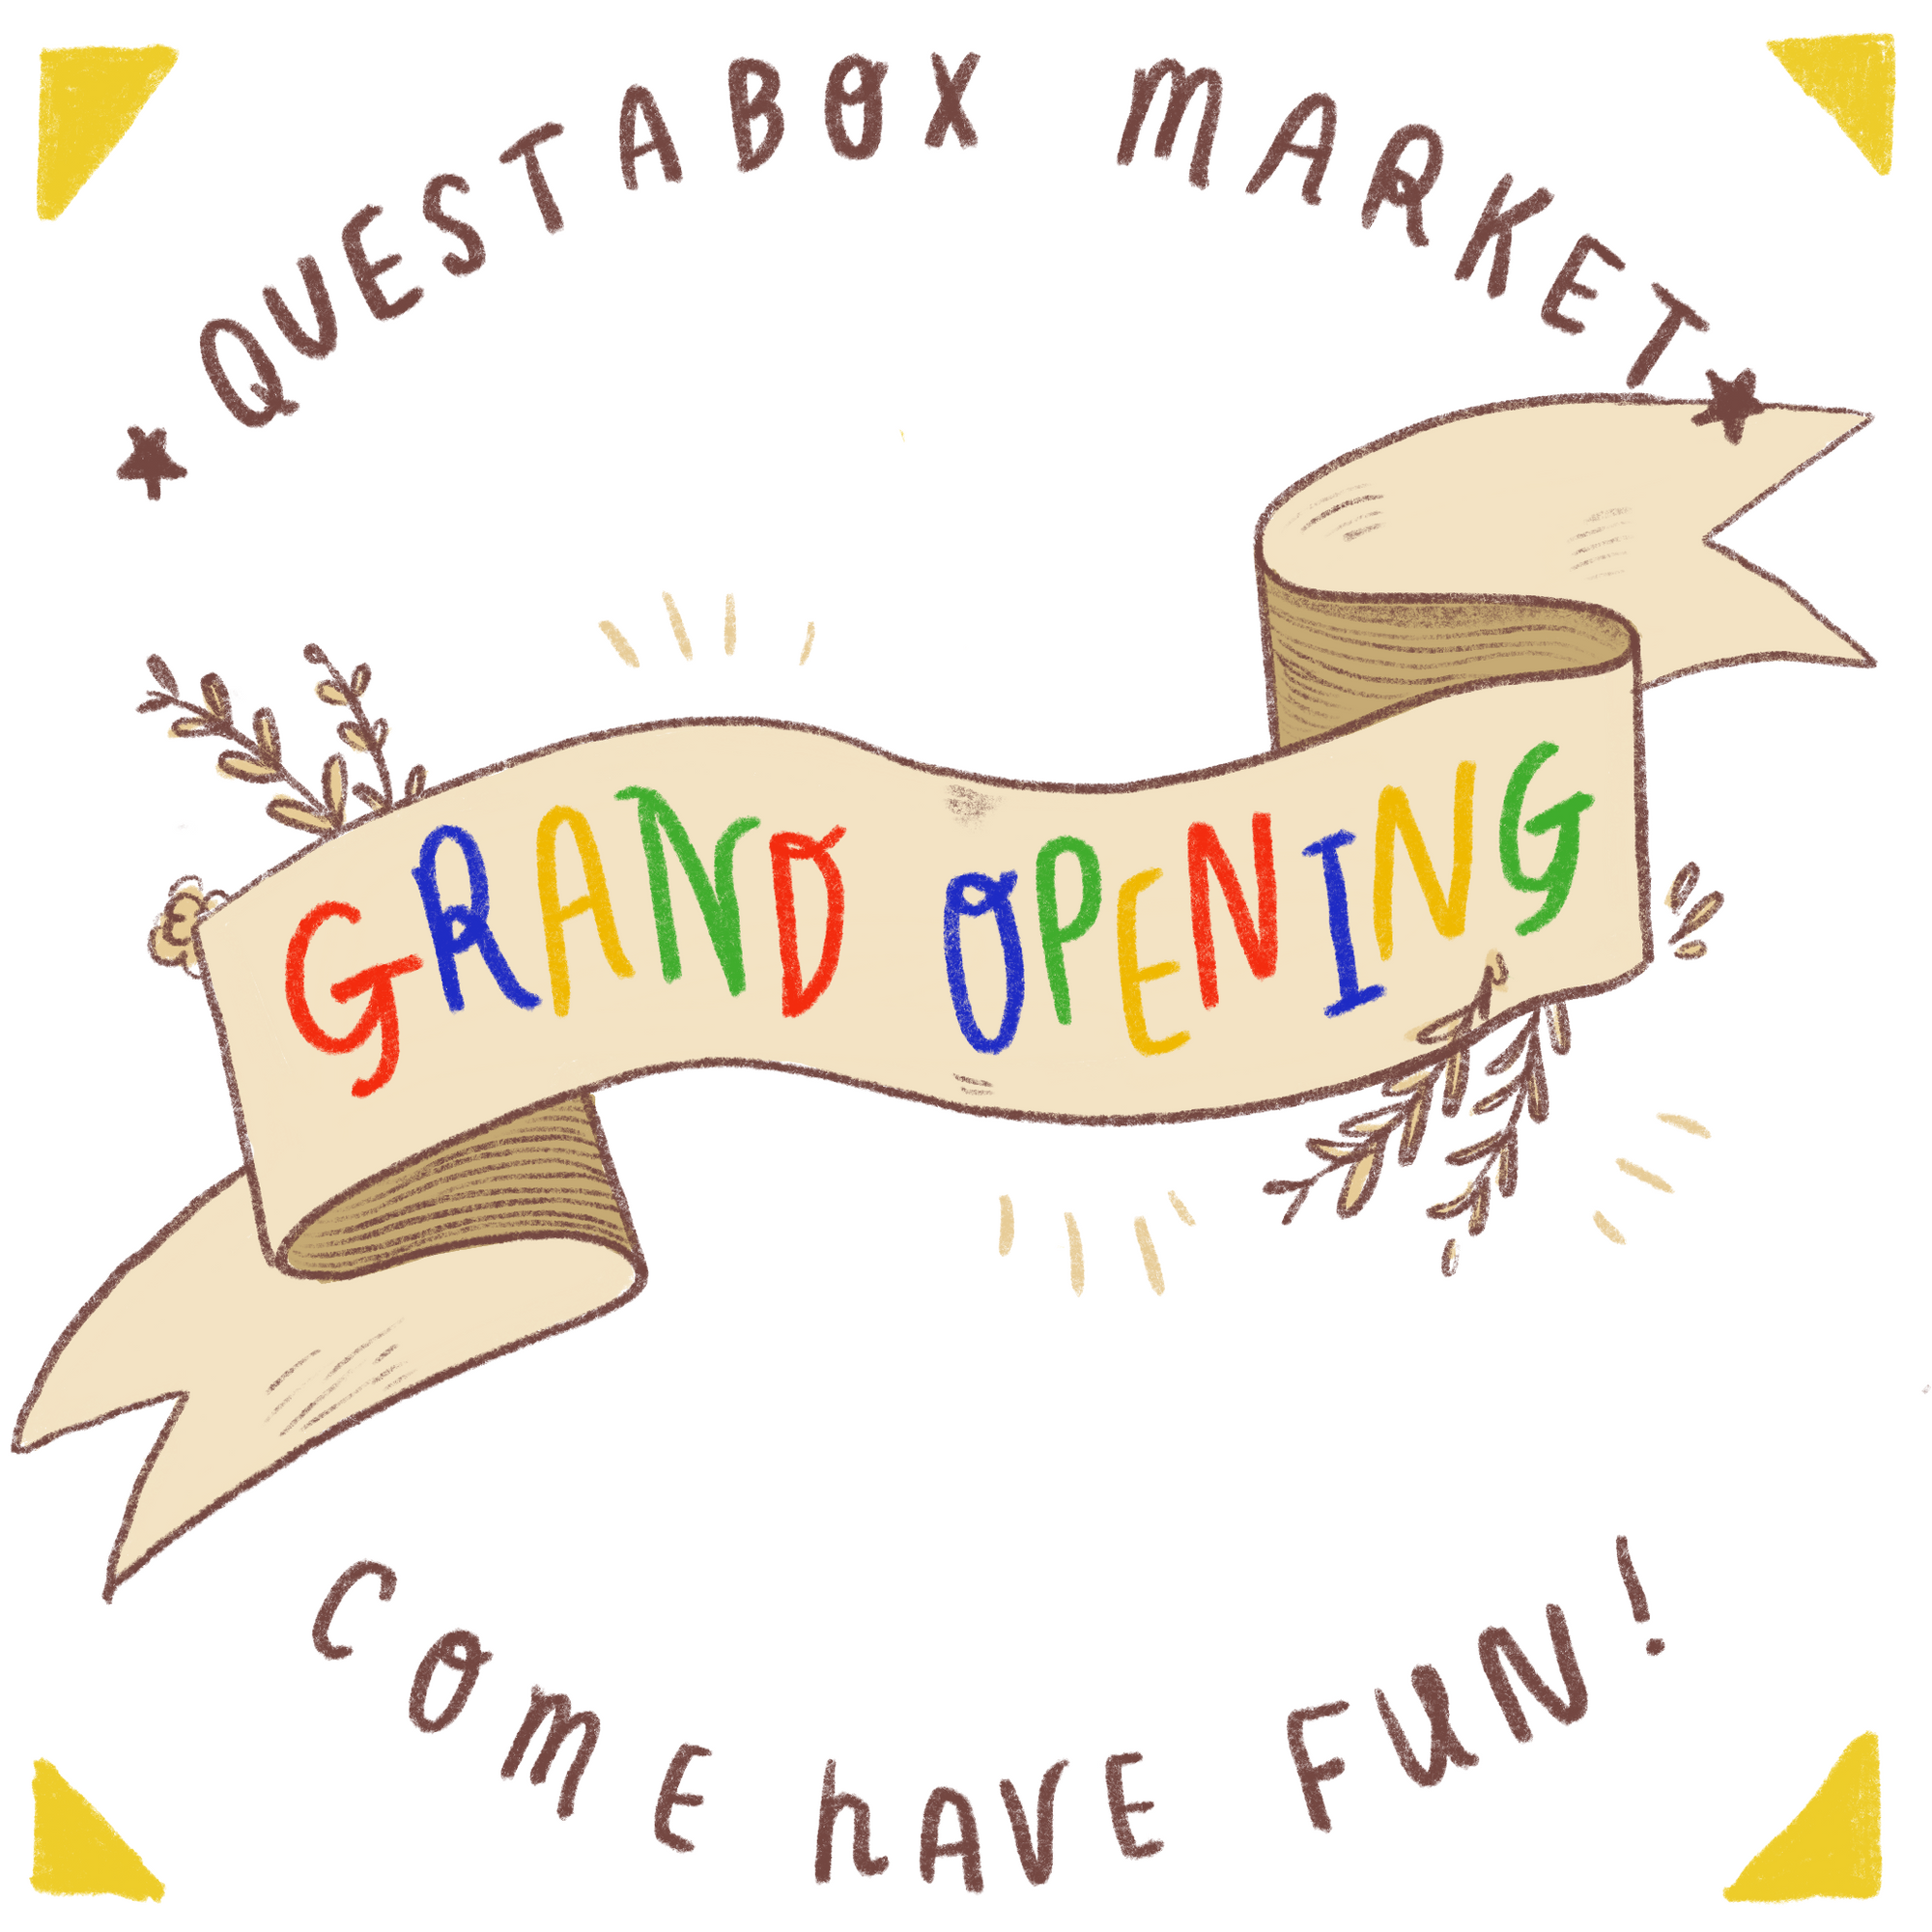 QUESTABOX Market is coming soon!